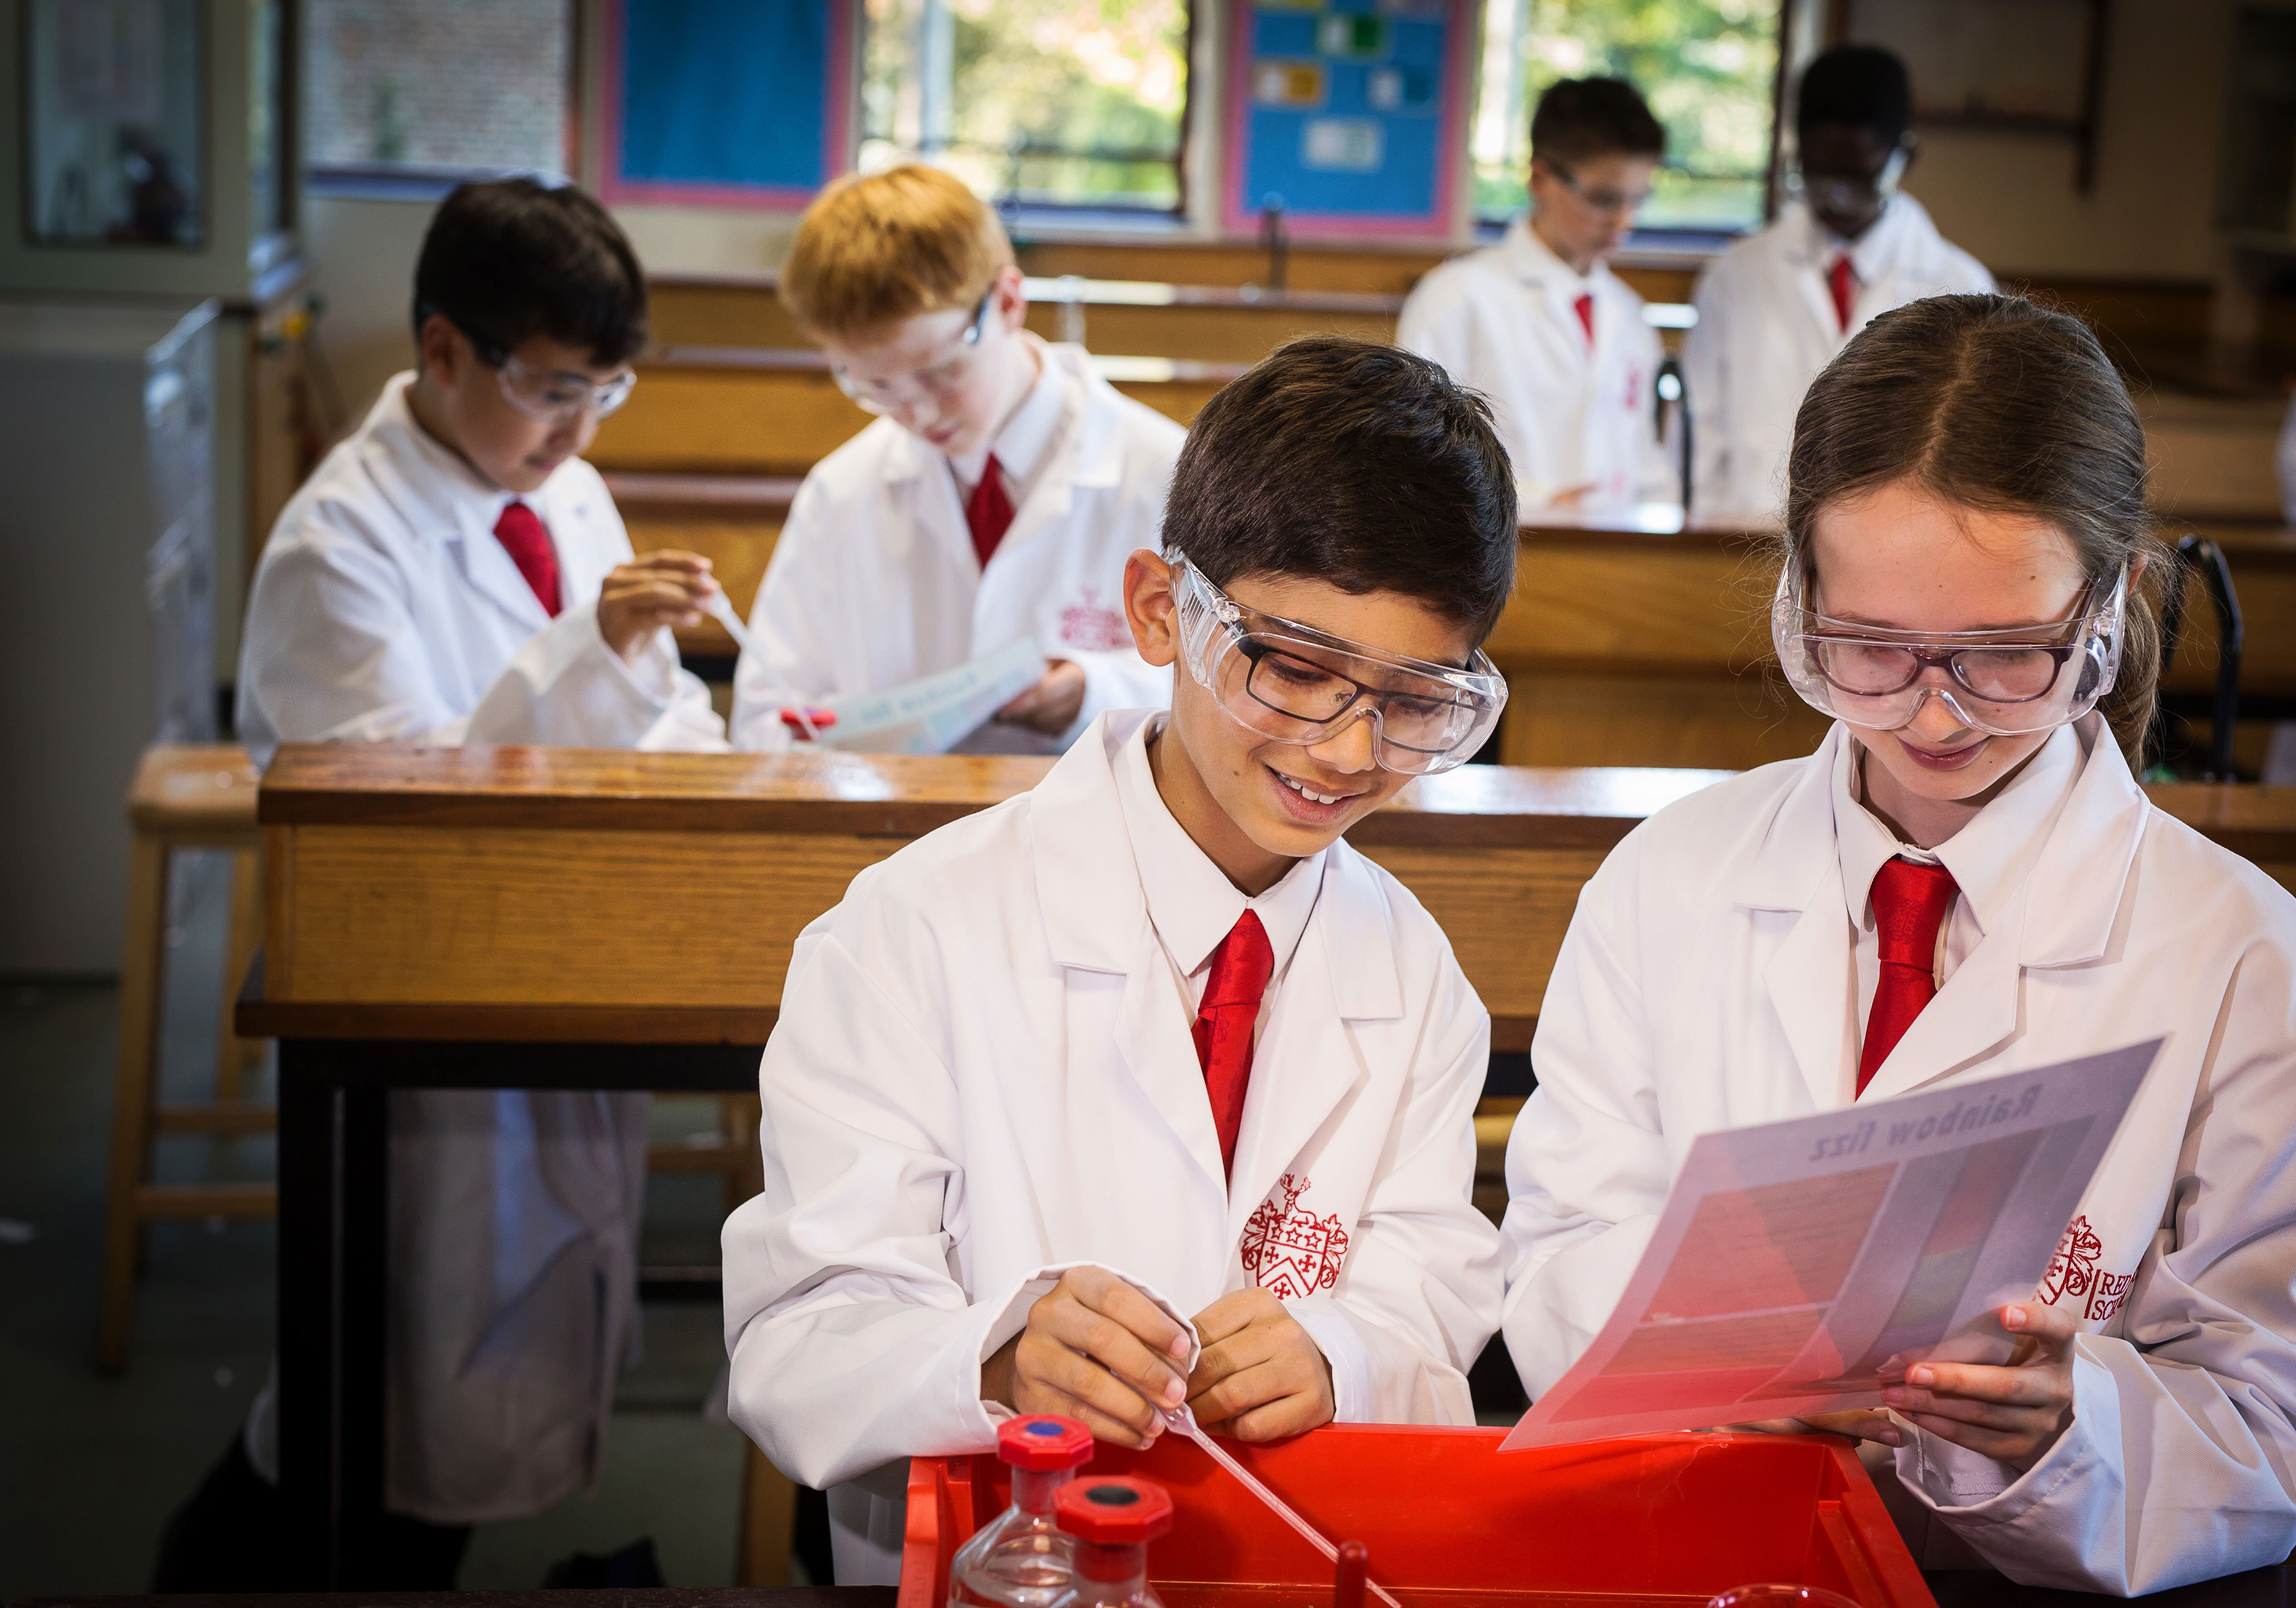 Two Red House School pupils measuring liquids and holding an instructions sheet in a chemistry lesson. There are 4 other pupils in the background taking part in the same experiment